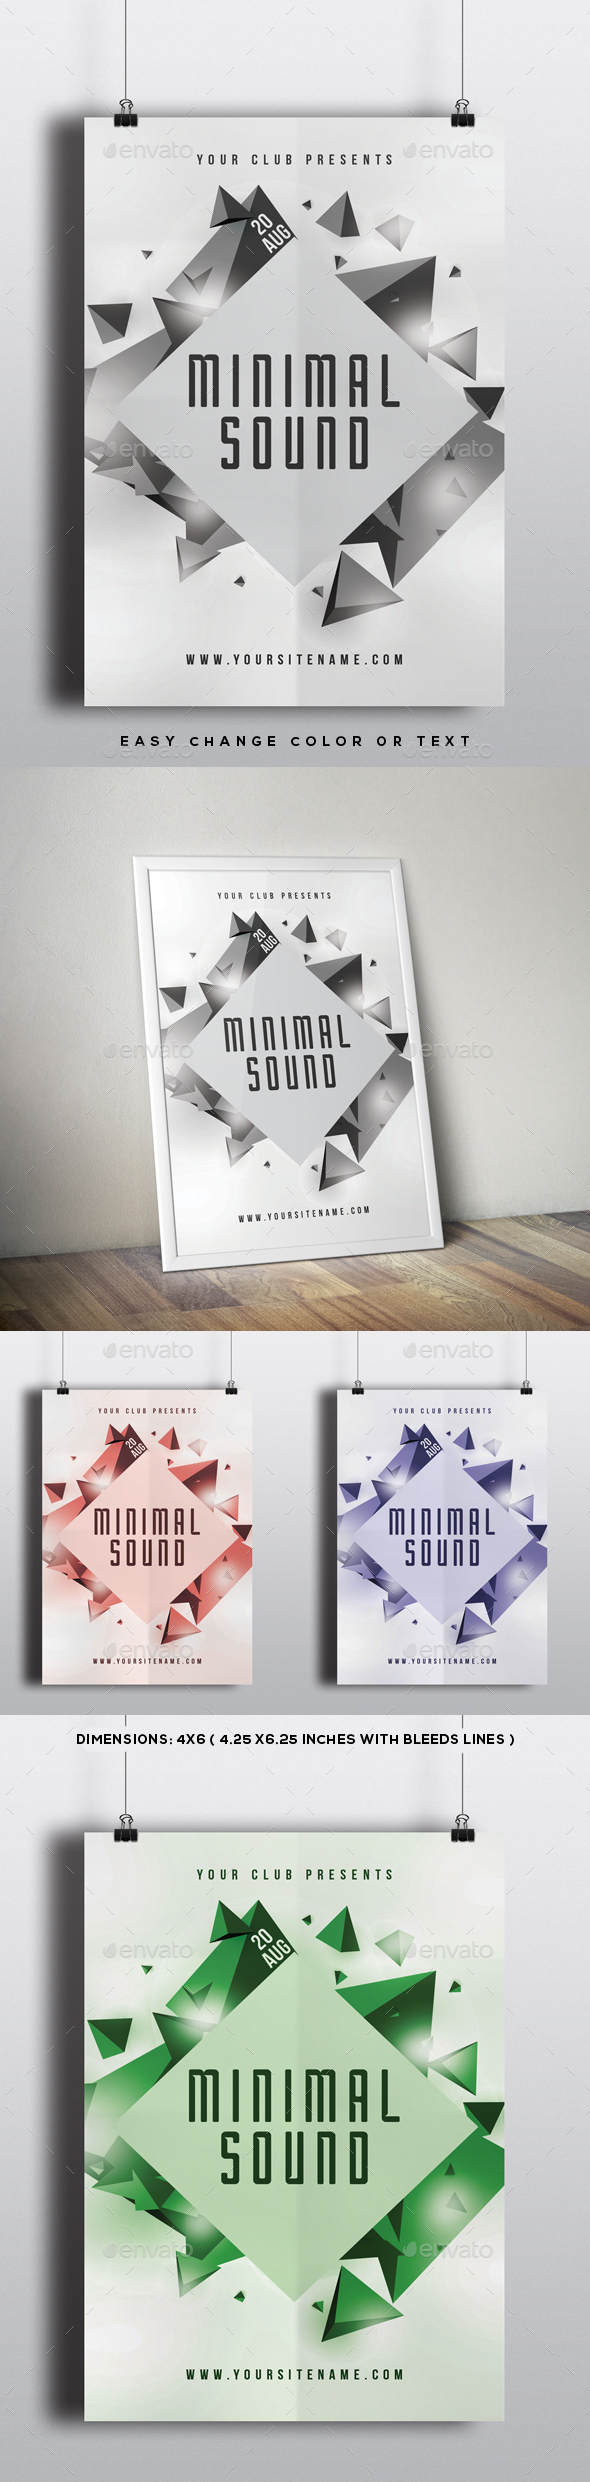 Minimal Sound Modern Flyer Template - Clubs & Parties Events